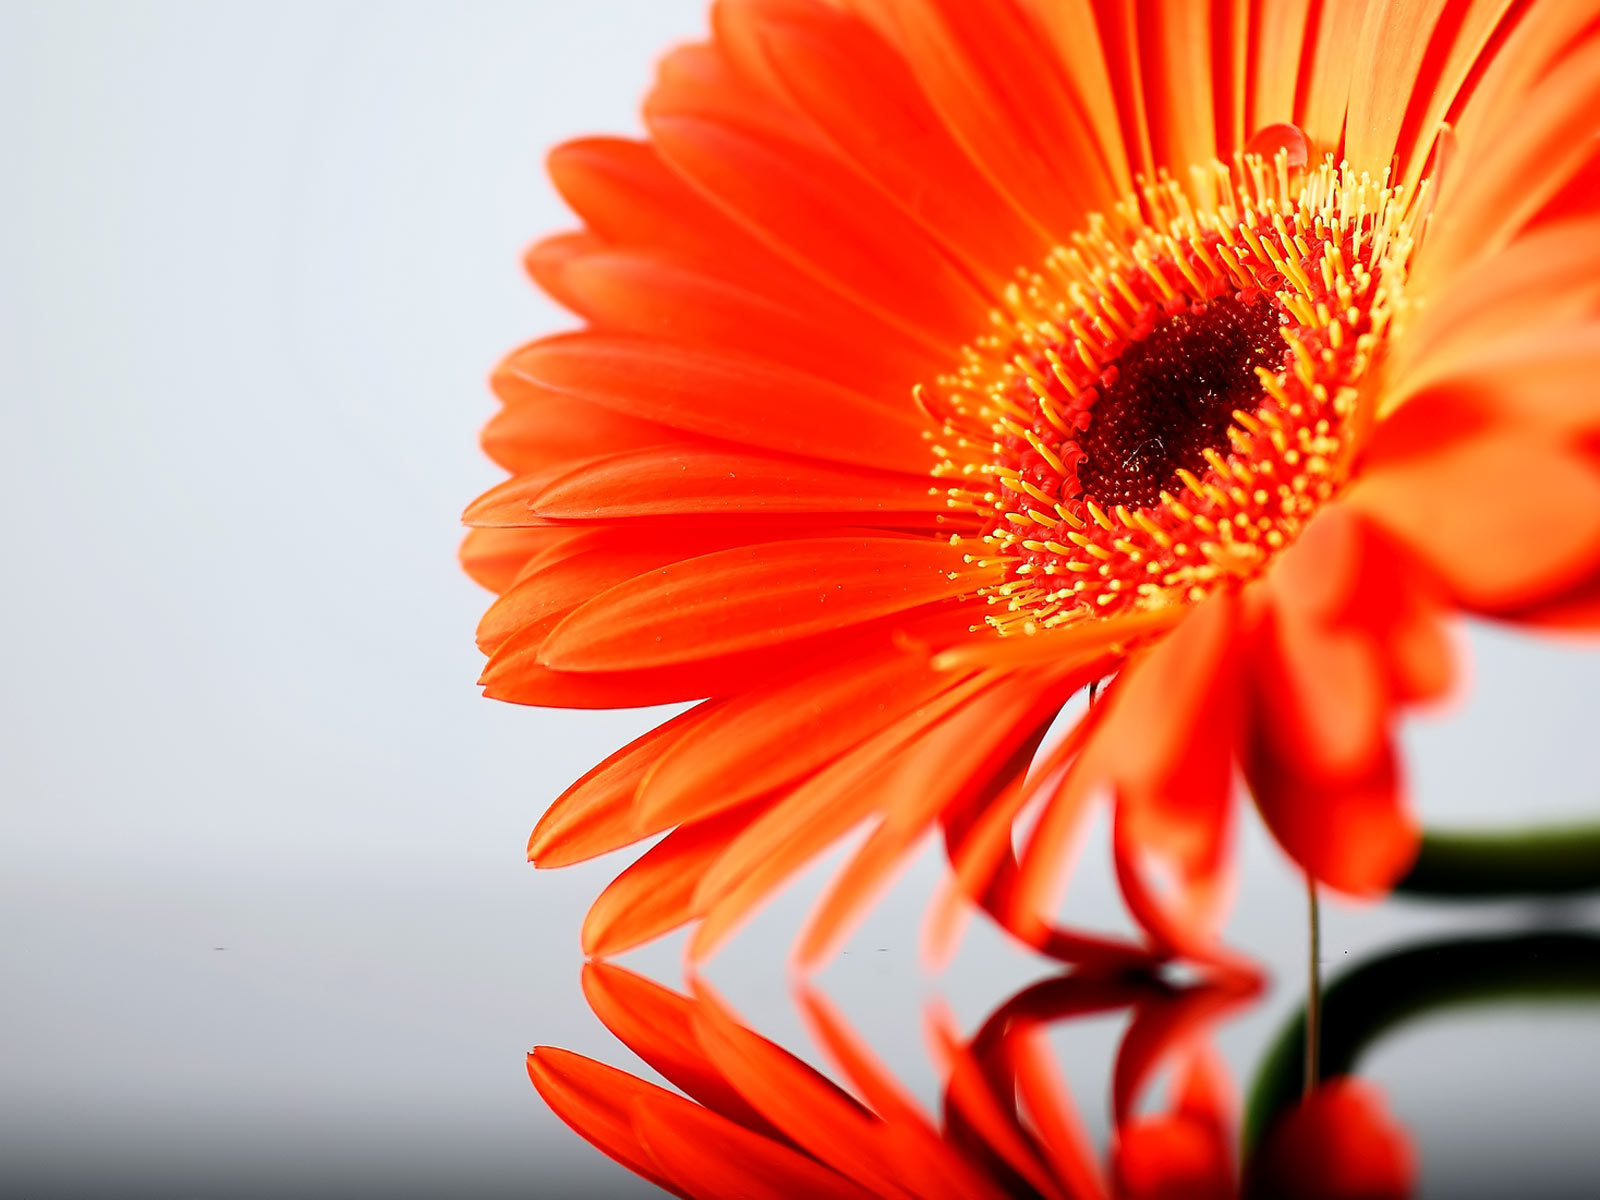 Color Images Orange Flowers Hd Wallpaper And Background Photos